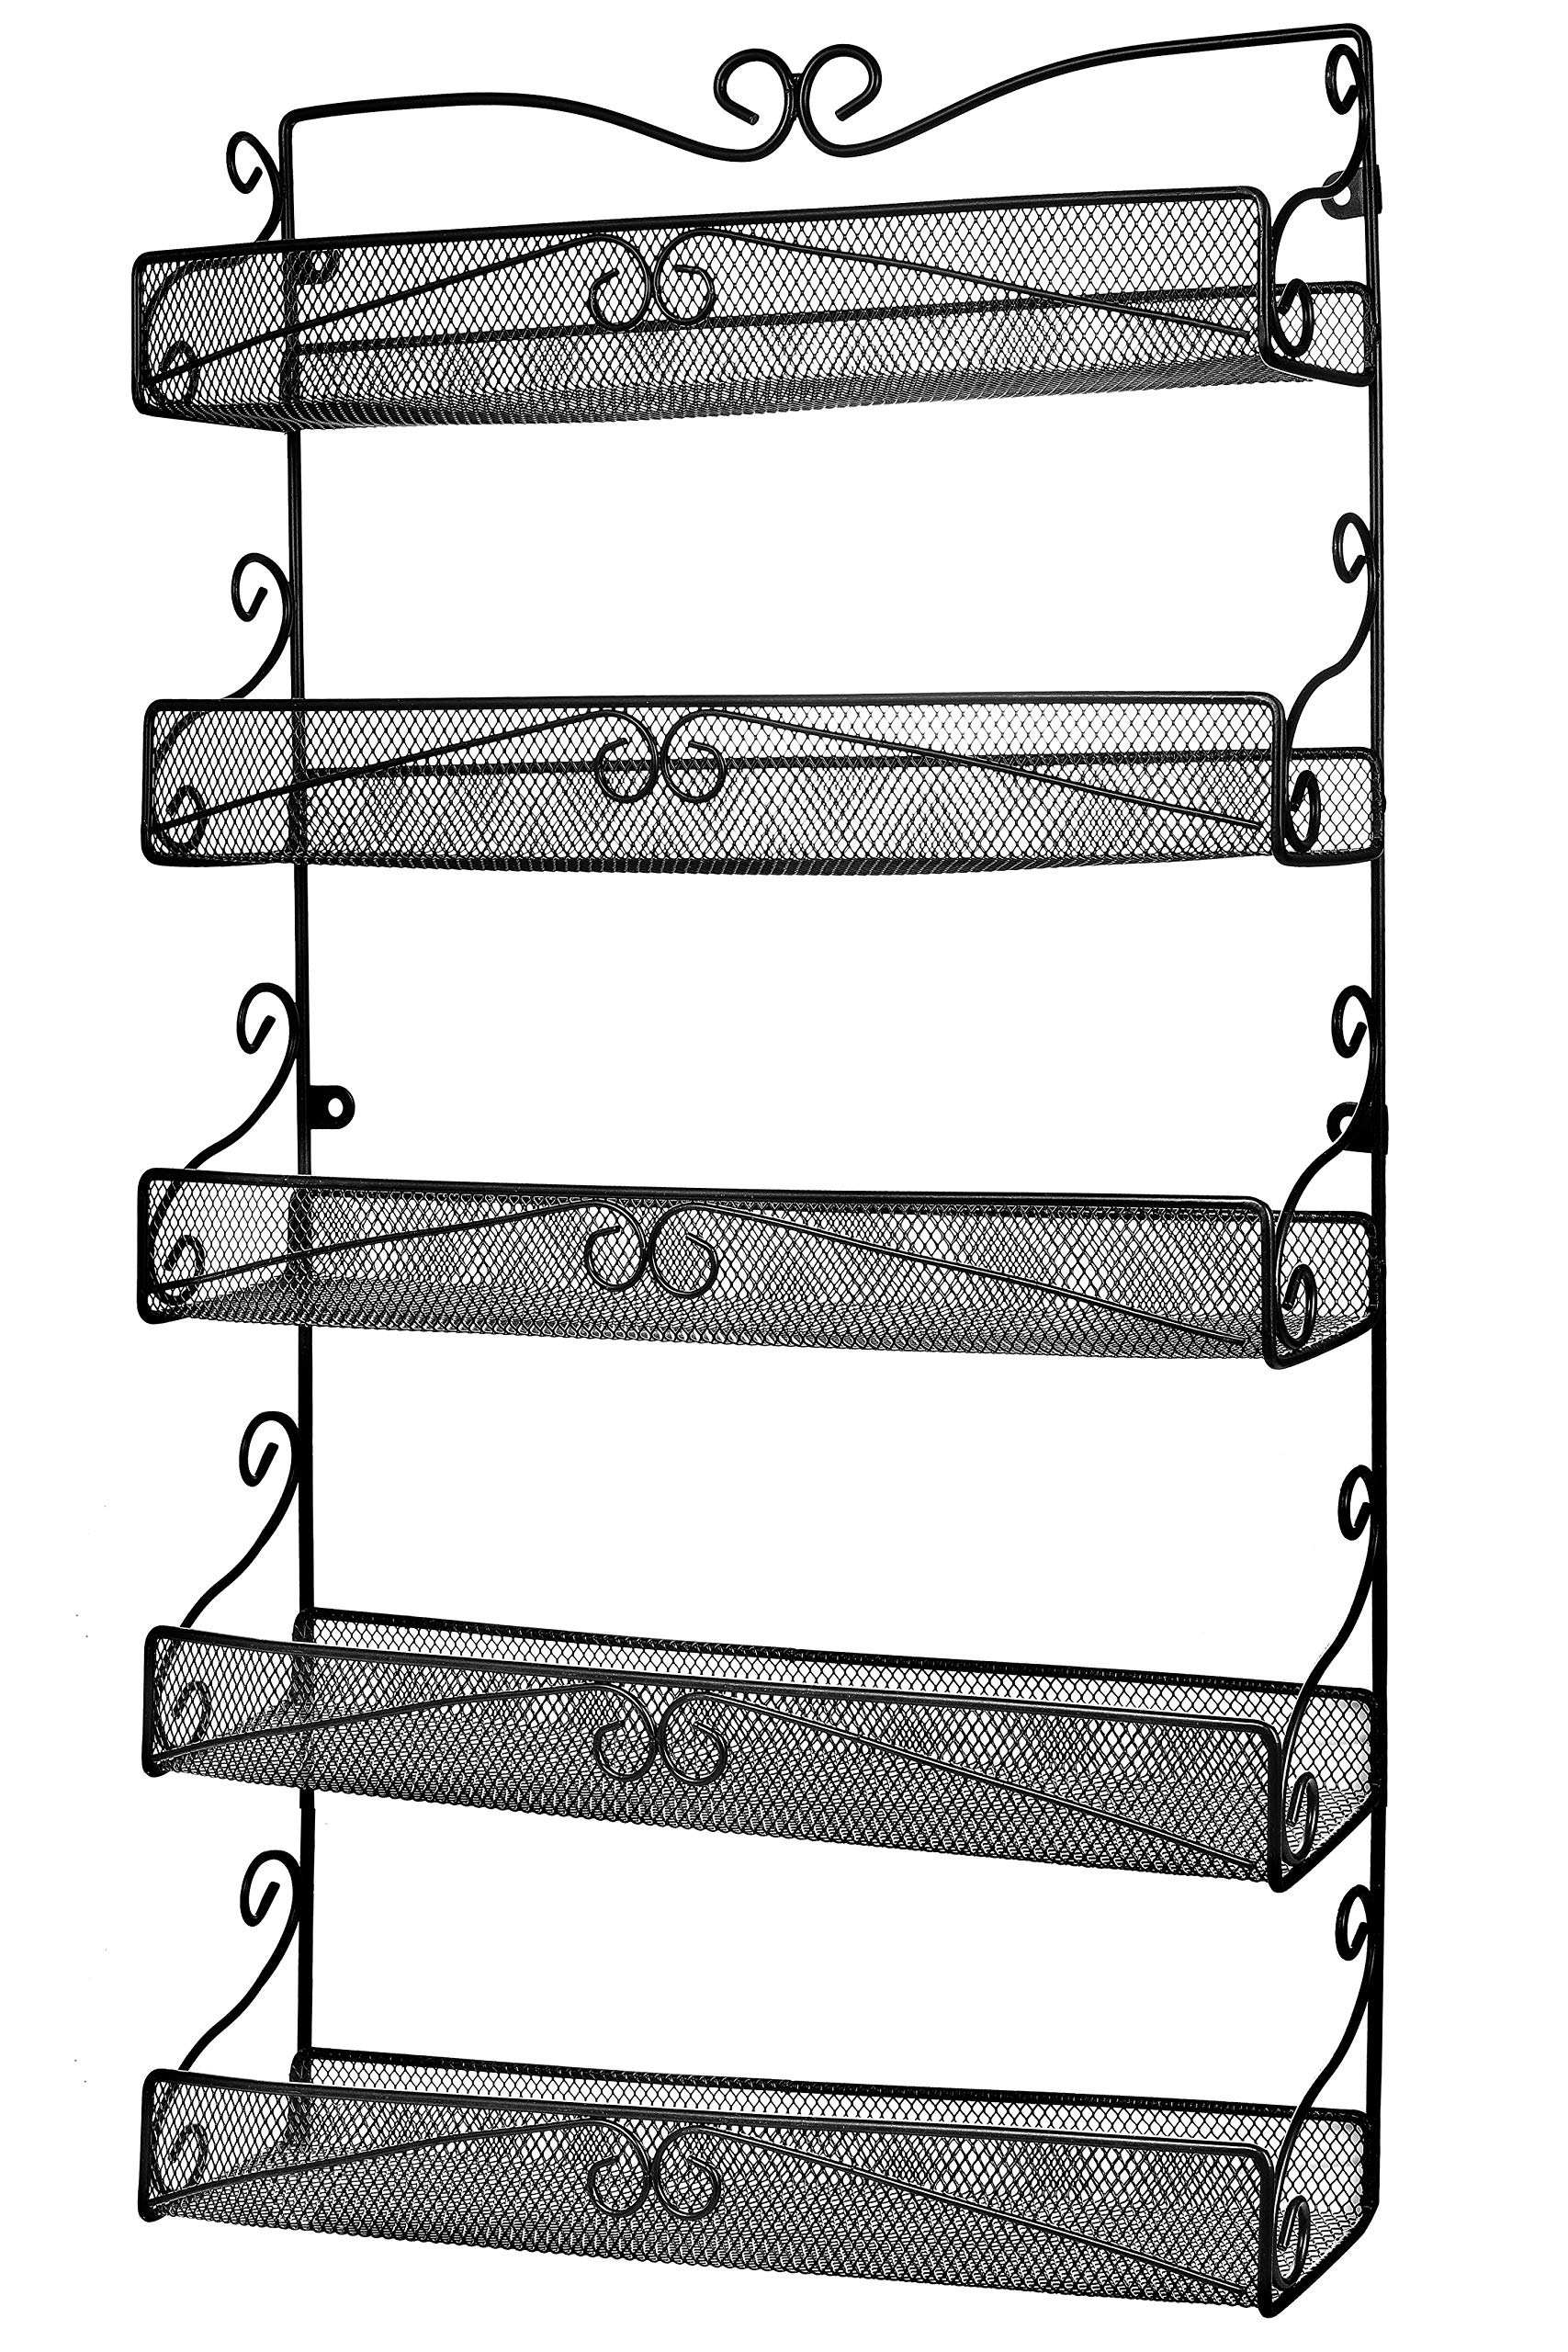 Wall Mounted Spice Rack Organizer for Cabinet Pantry Door Kitchen Large Hanging Spice Shelf,5 Tier Black by URFORESTIC